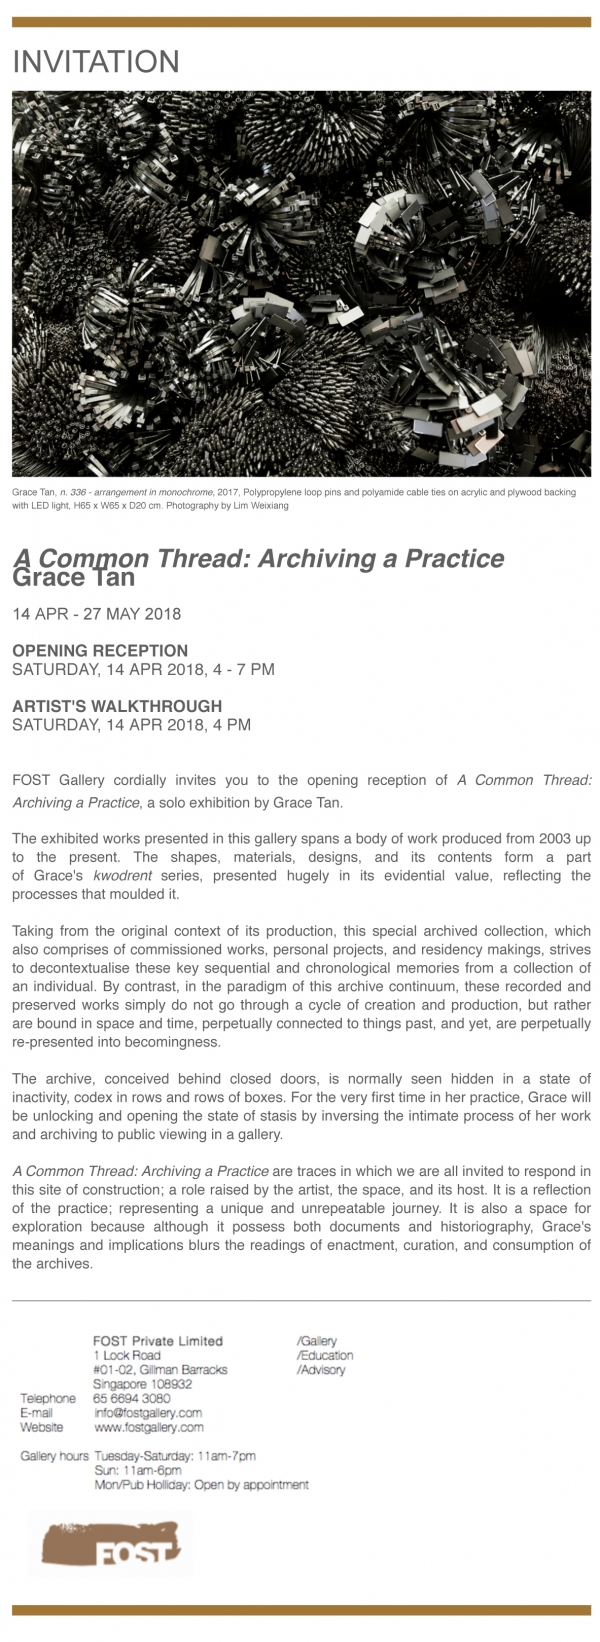 A Common Thread: Archiving a Practice